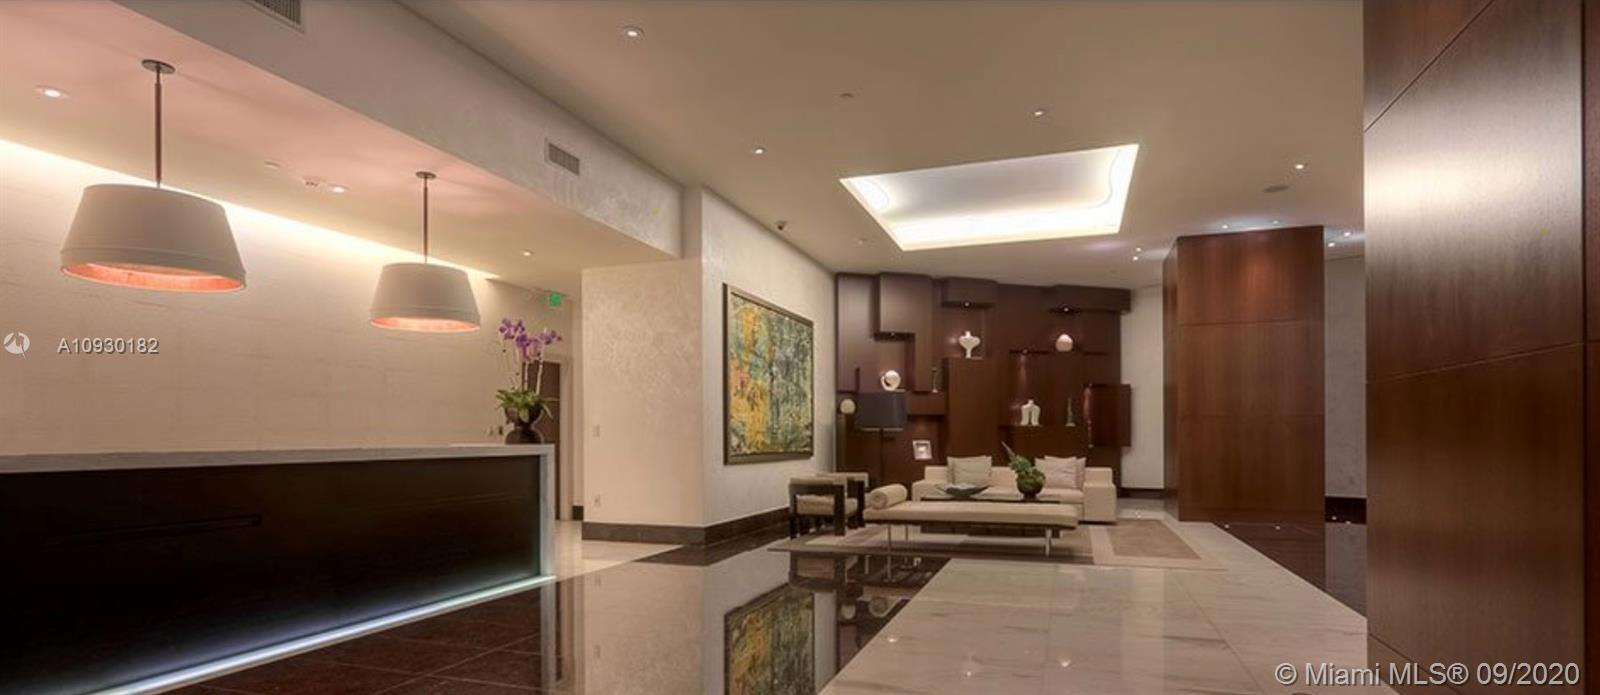 Gorgeous 2Bd 2.5Ba condo in Epic Residences. Unit features Italian appliances and kitchen cabinets,